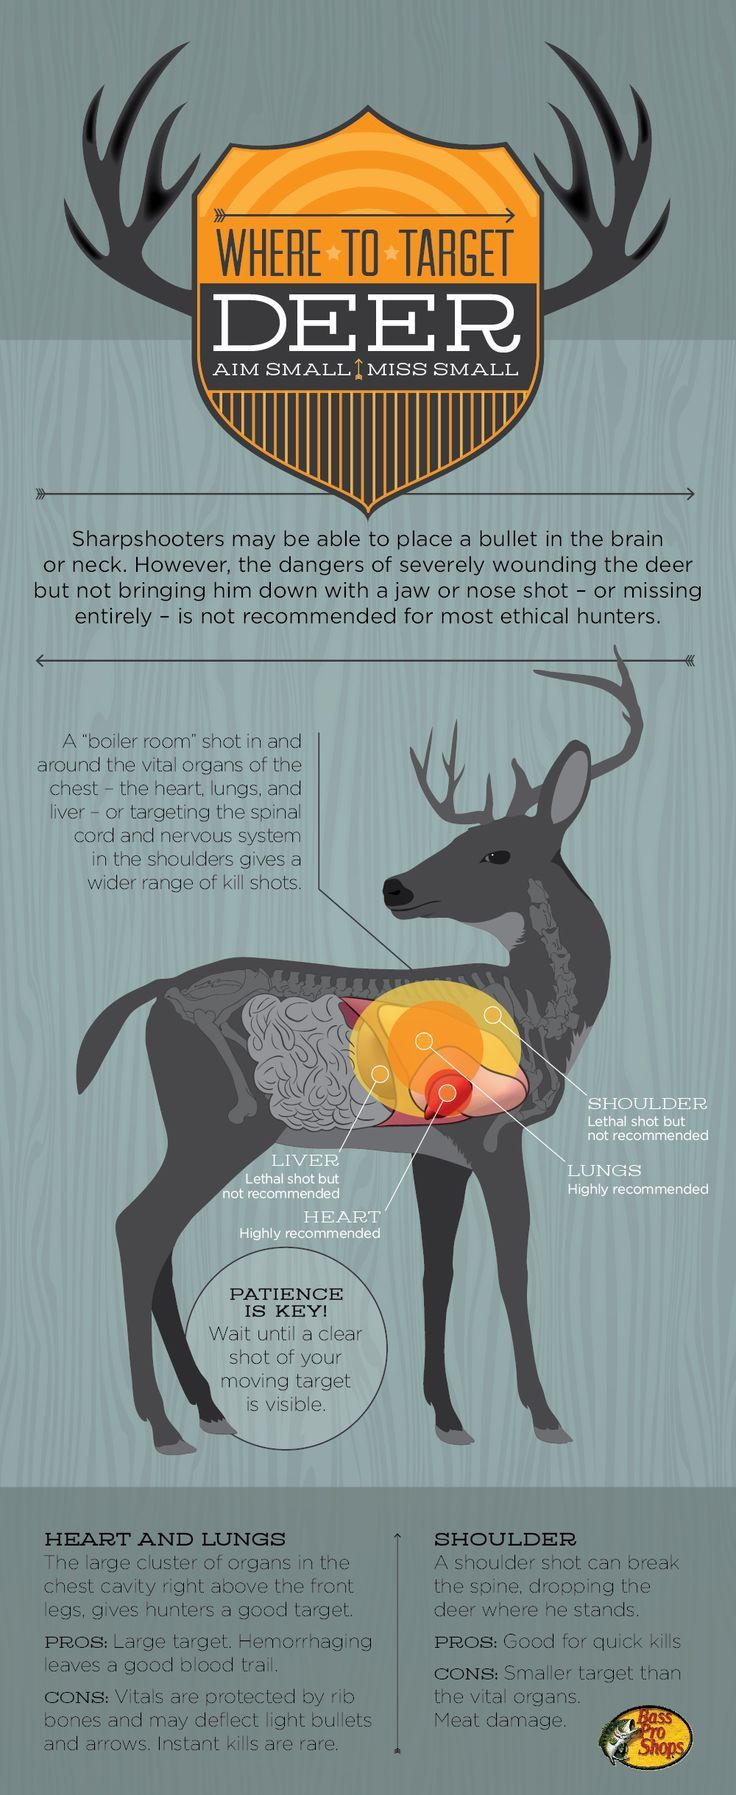 68 best Outside images on Pinterest | Charts, Animal pictures and ...